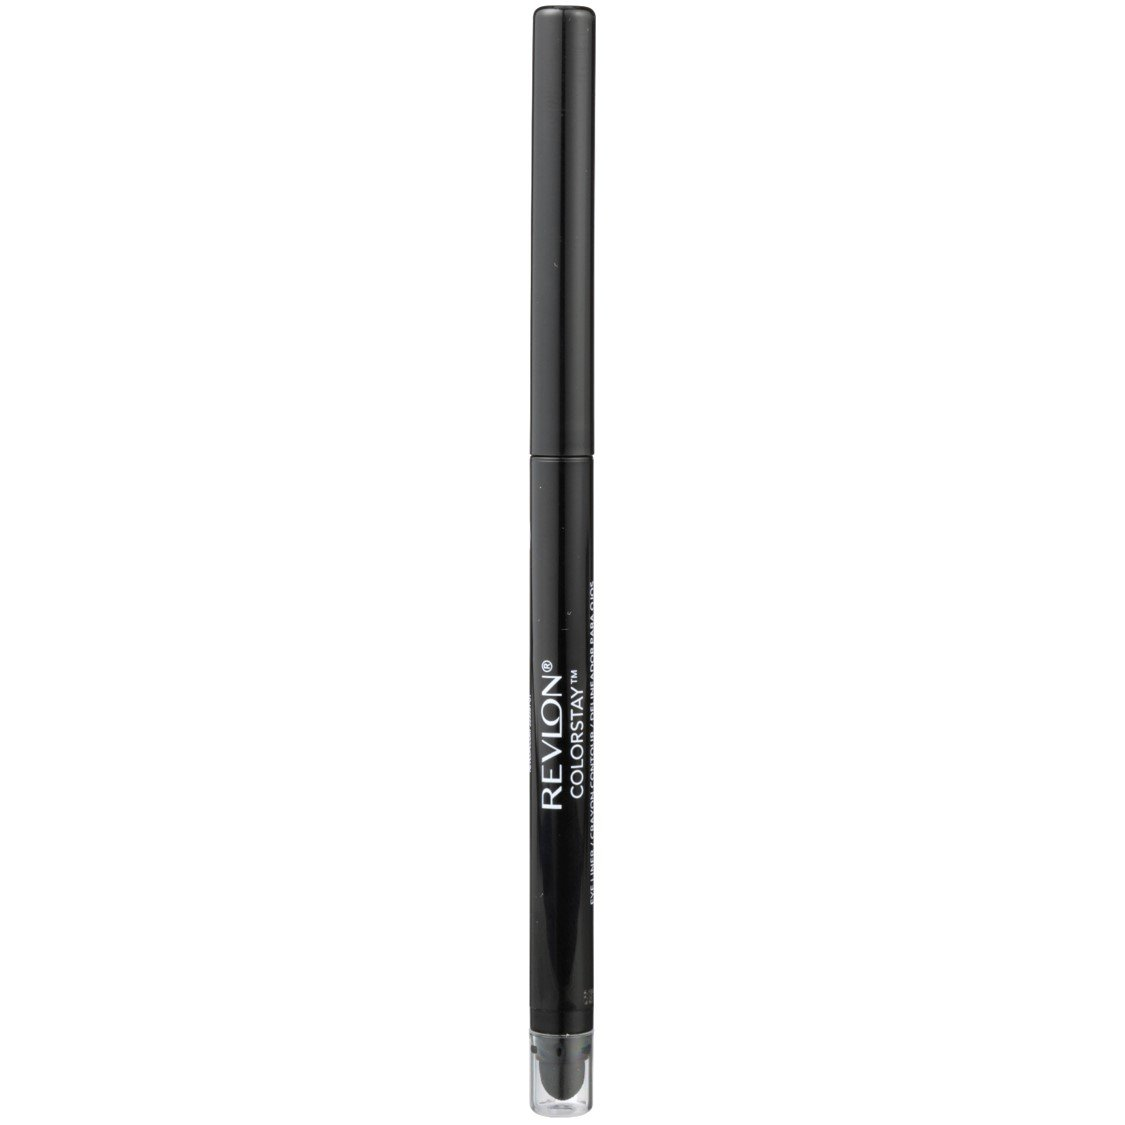 Revlon ColorStay Eyeliner Pencil, Black